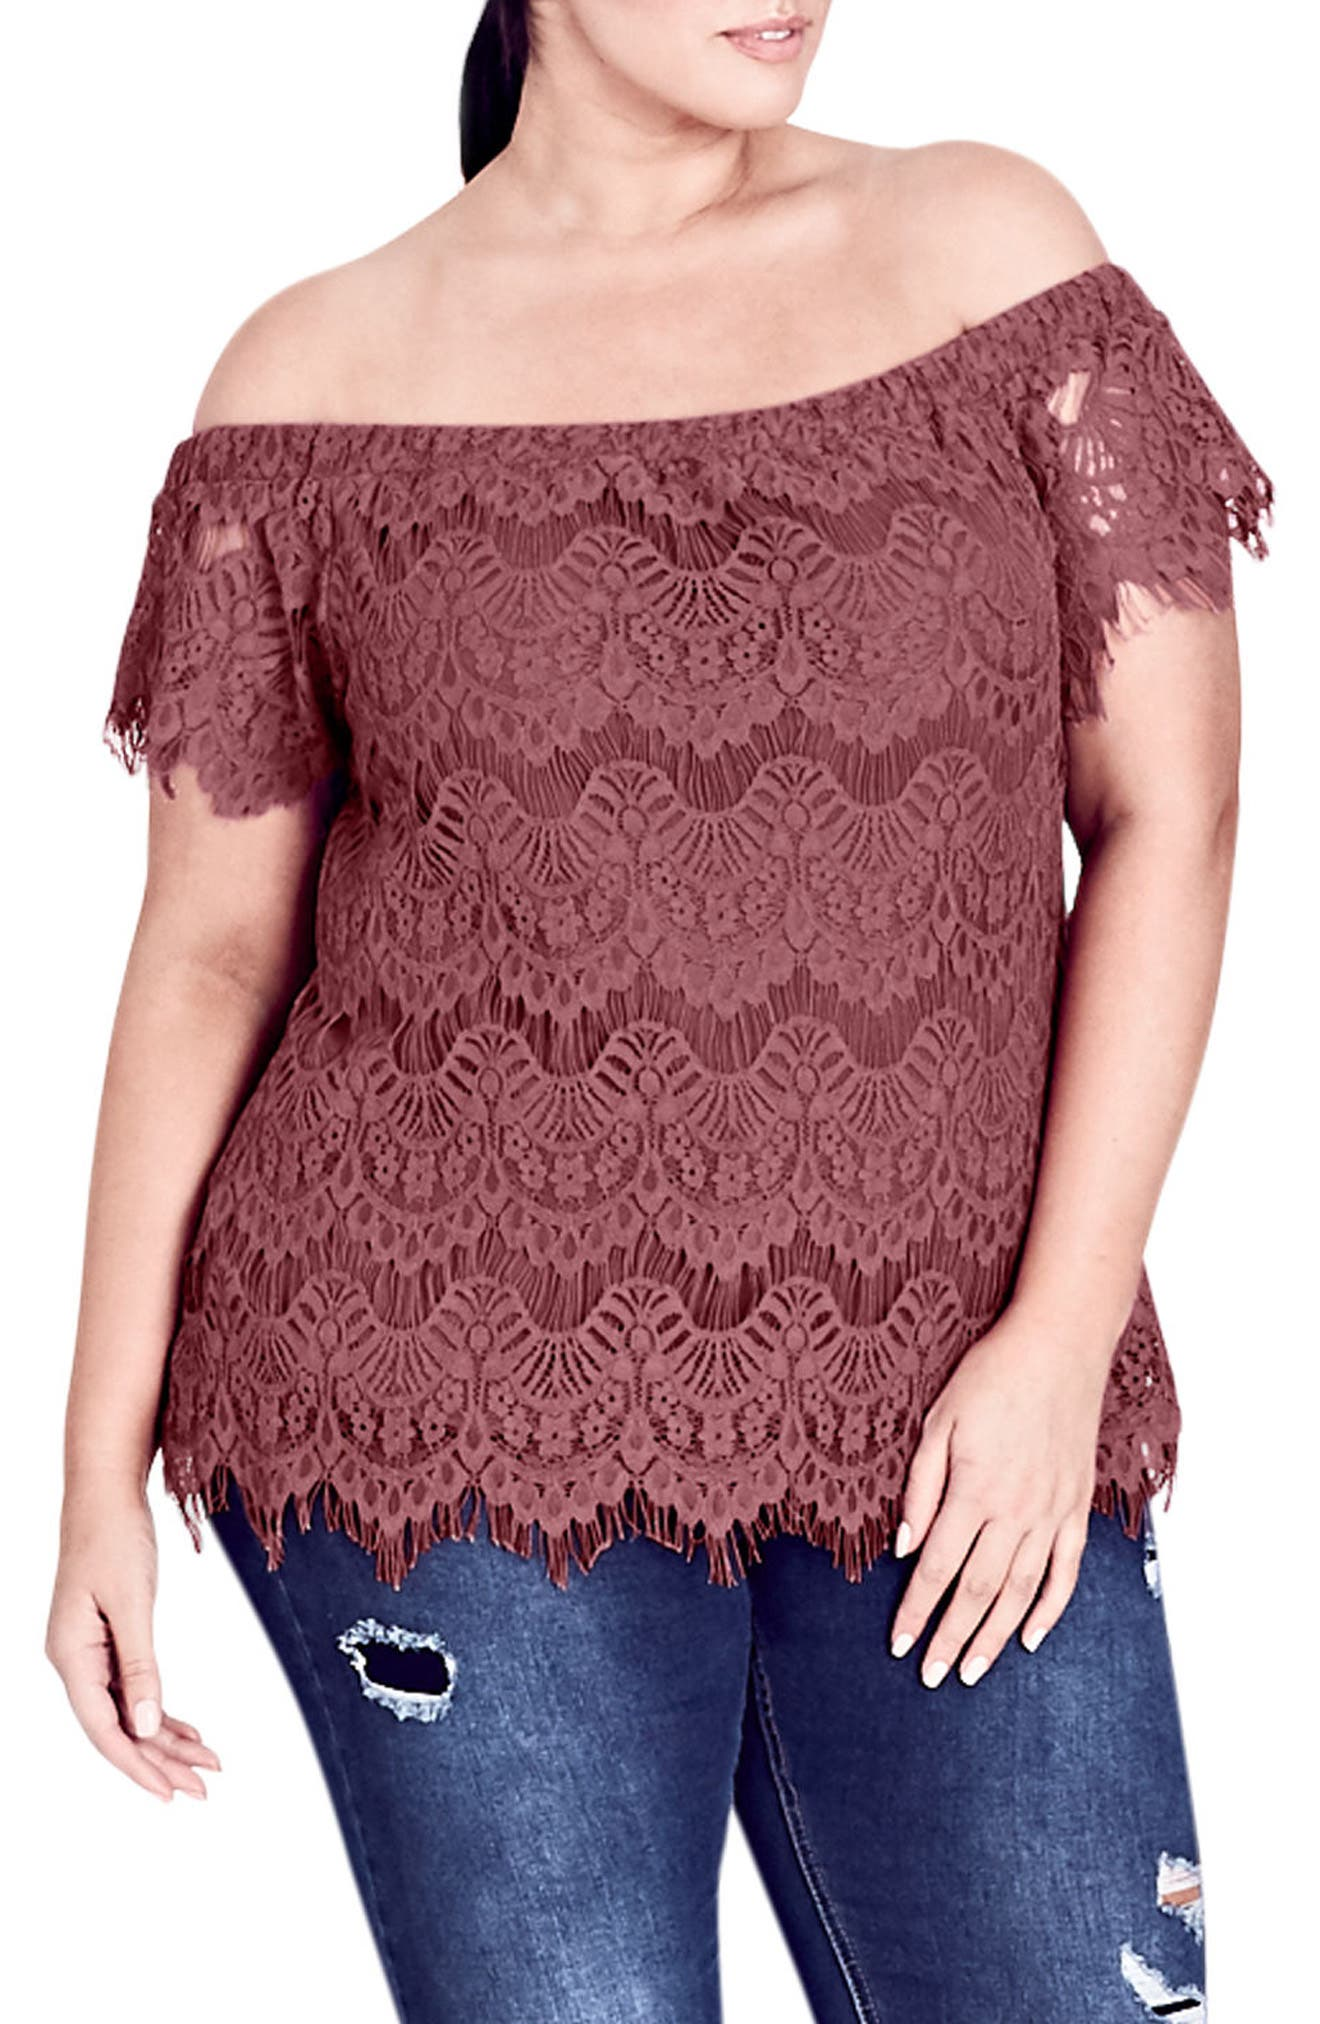 Lacy Off the Shoulder Top,                             Main thumbnail 1, color,                             DUSTY ROSE